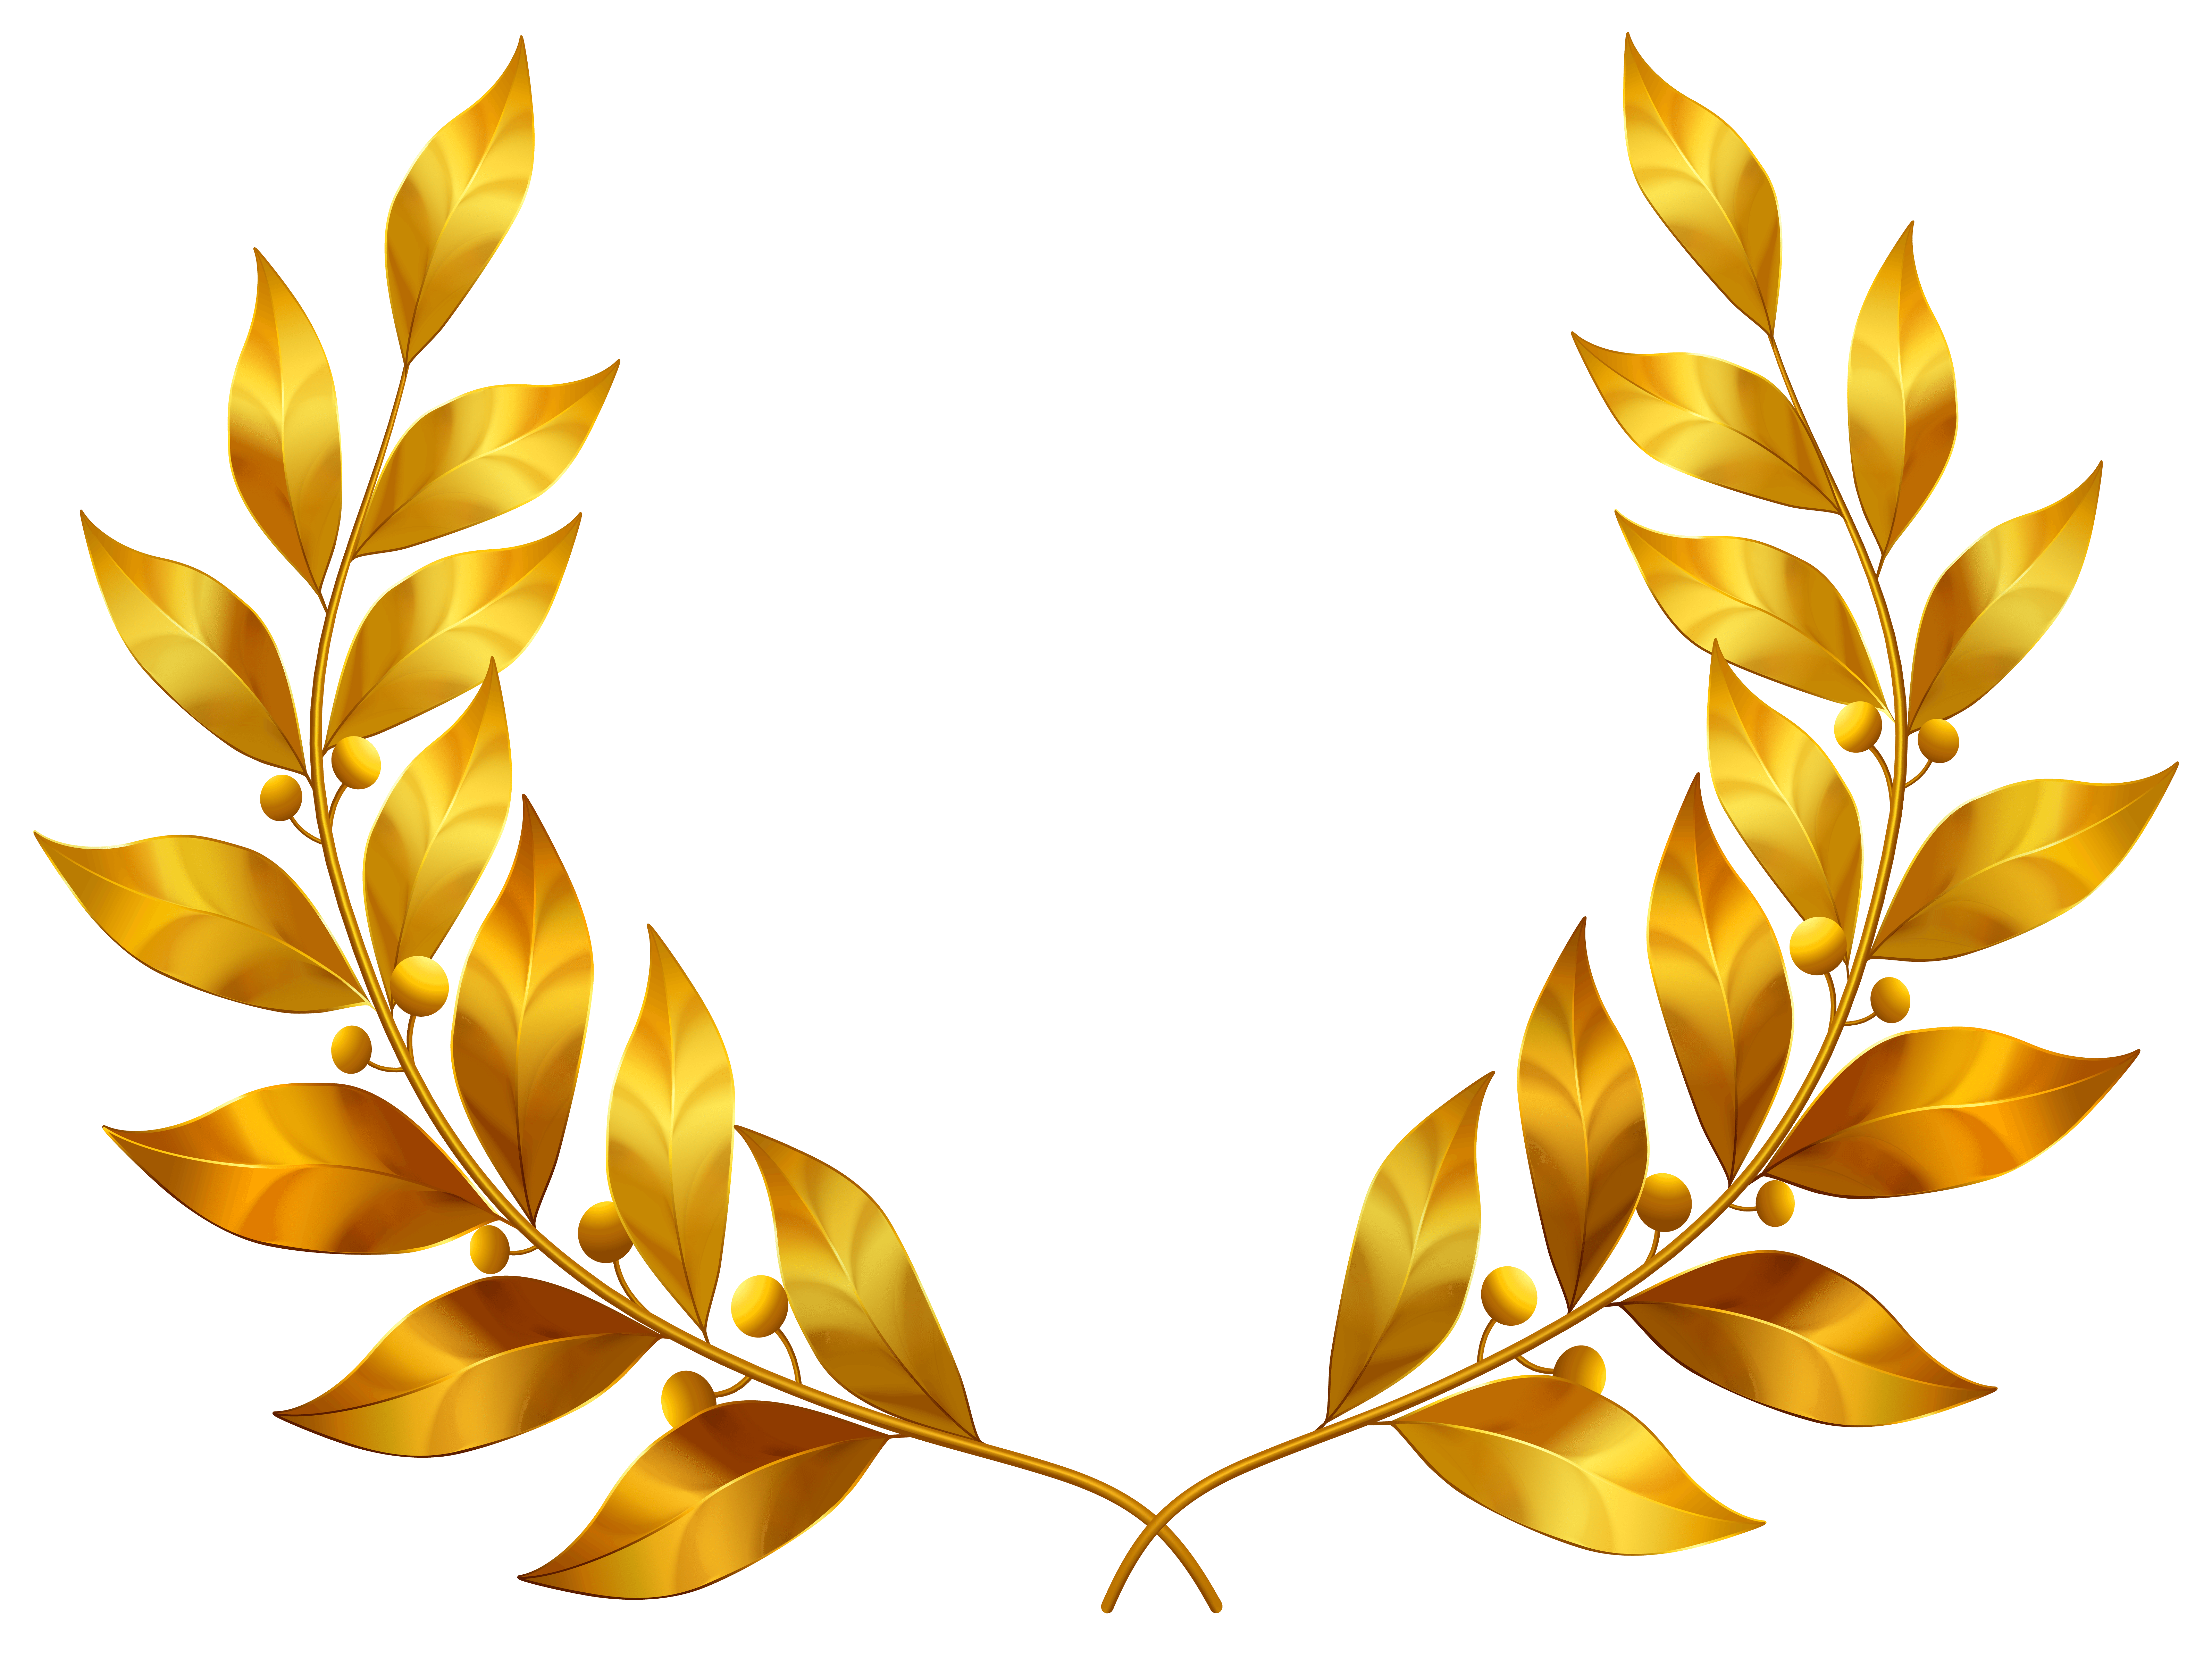 Gold leaf clipart front view.